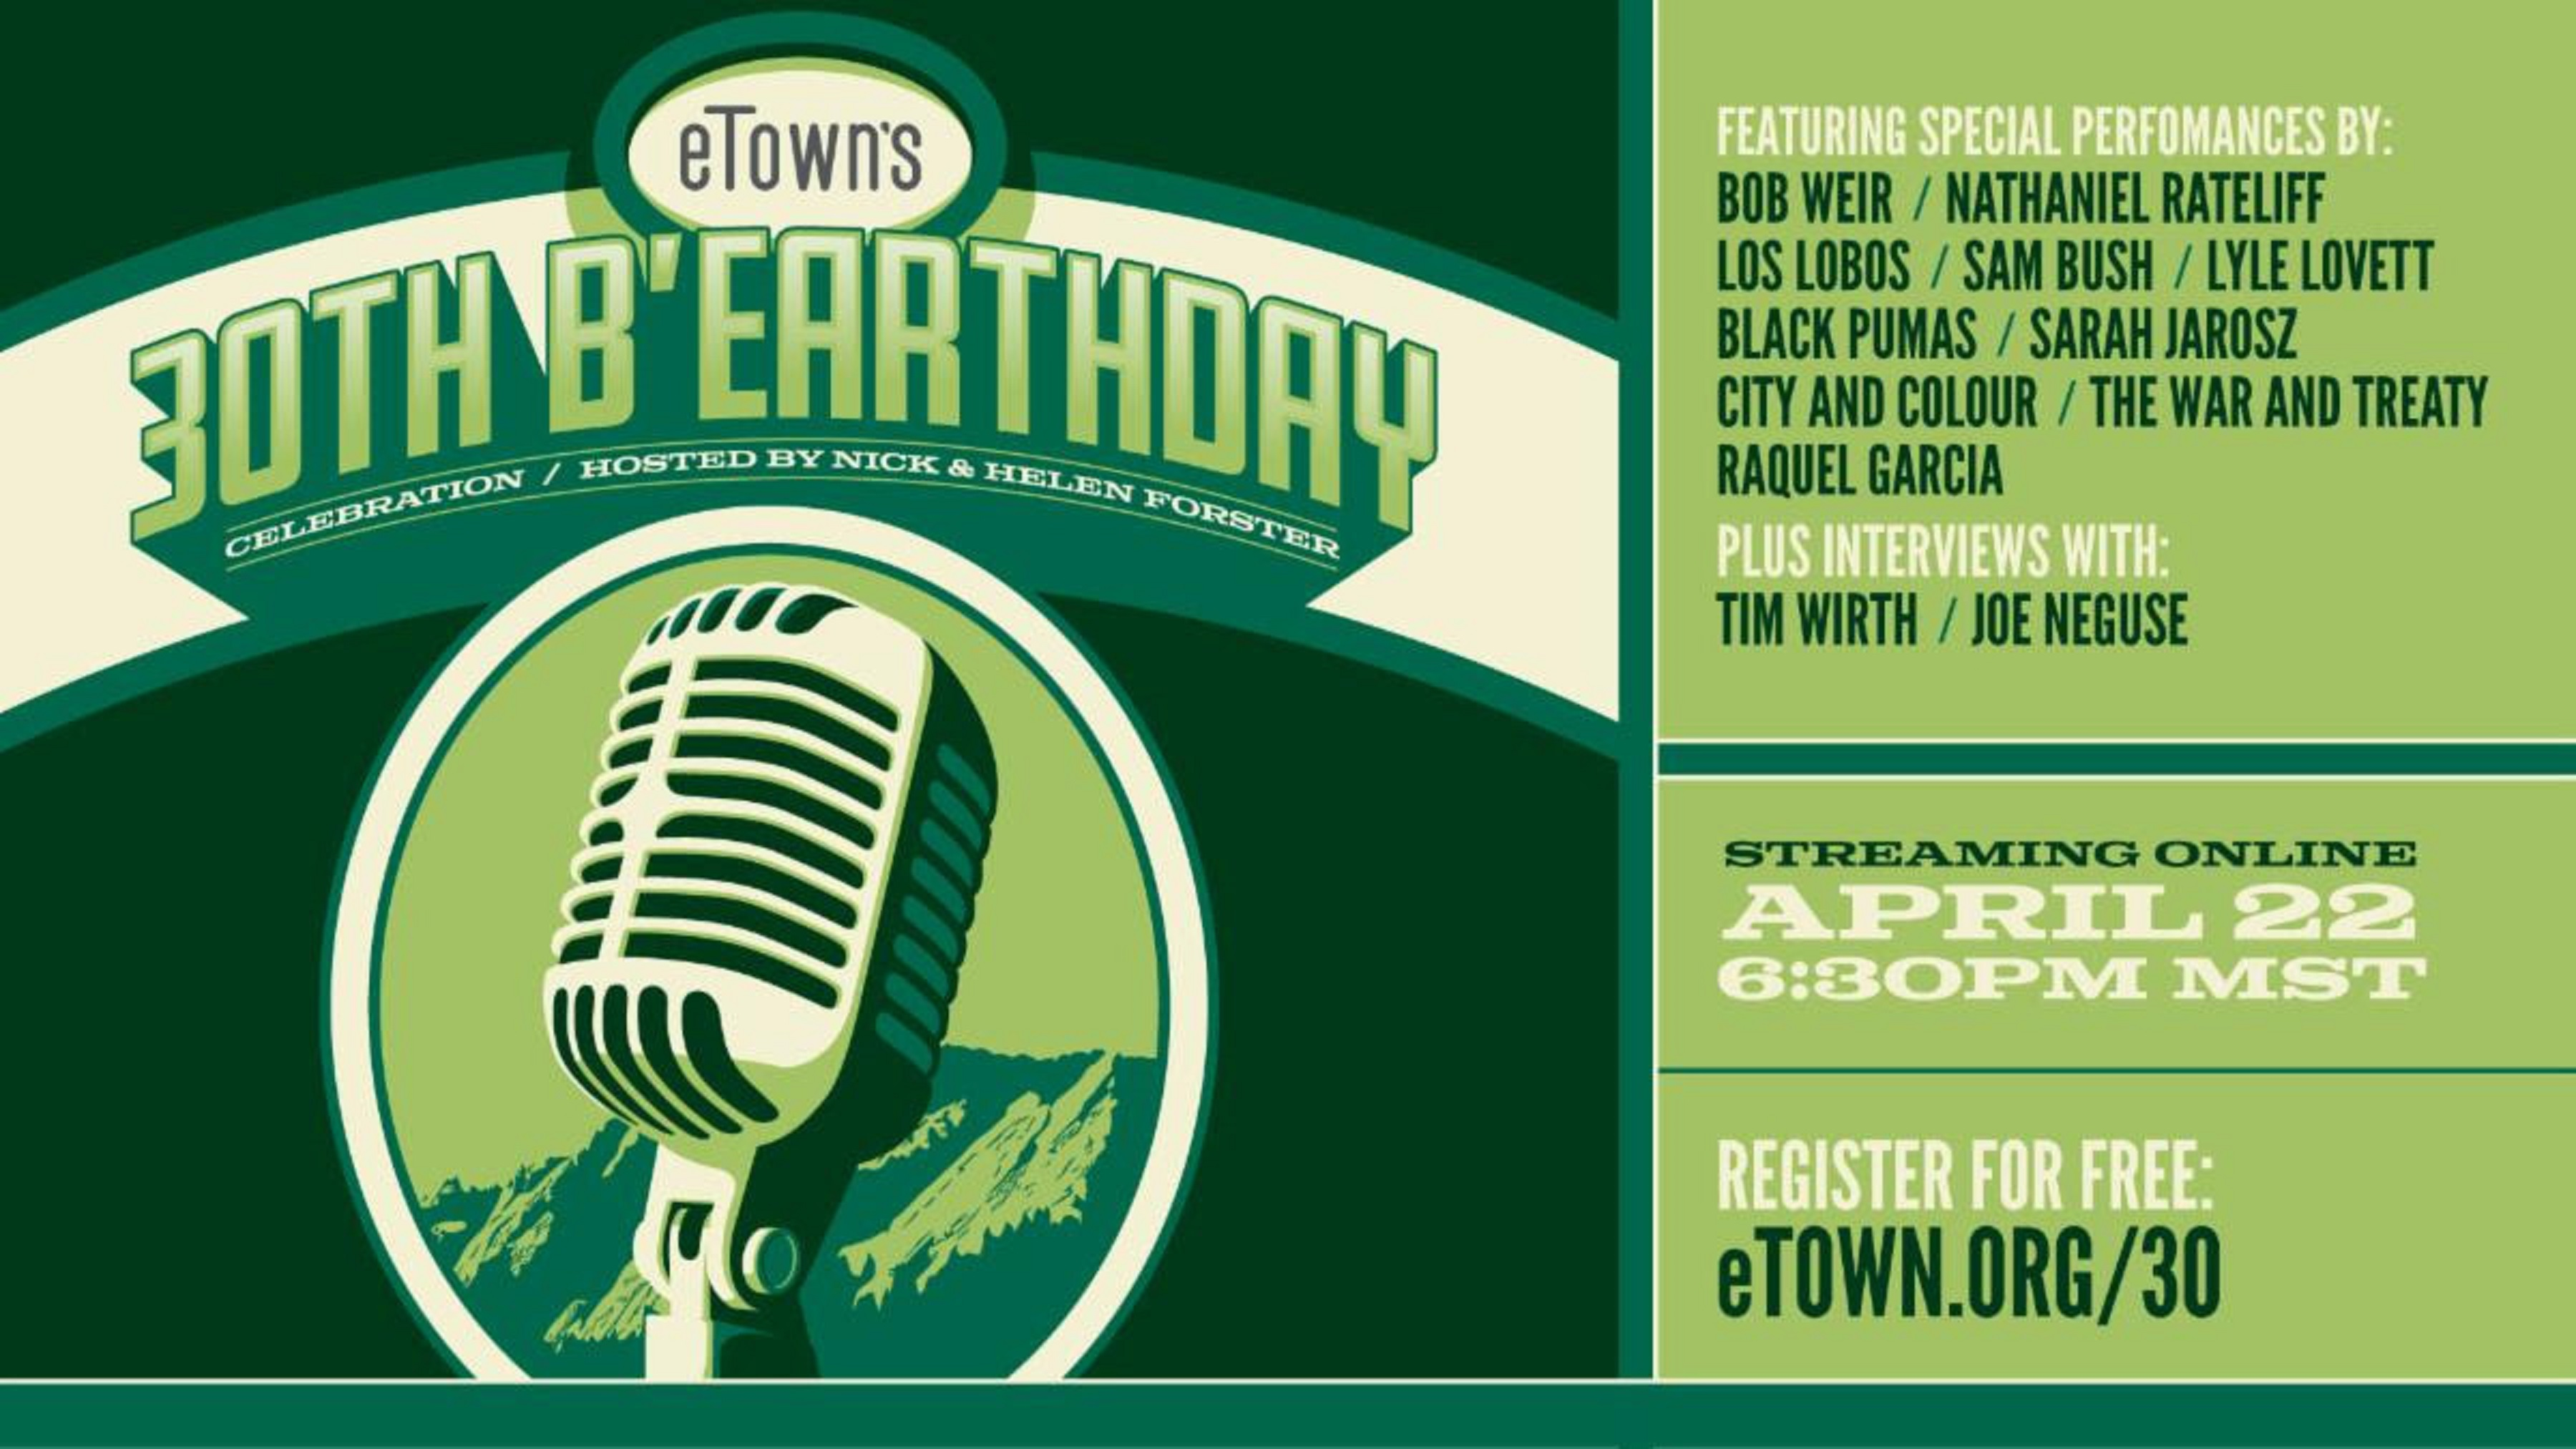 eTown's Free 30th b'Earthday Celebration To Feature Bob Weir, Sam Bush, Lyle Lovett, And More This Thursday, April 22nd